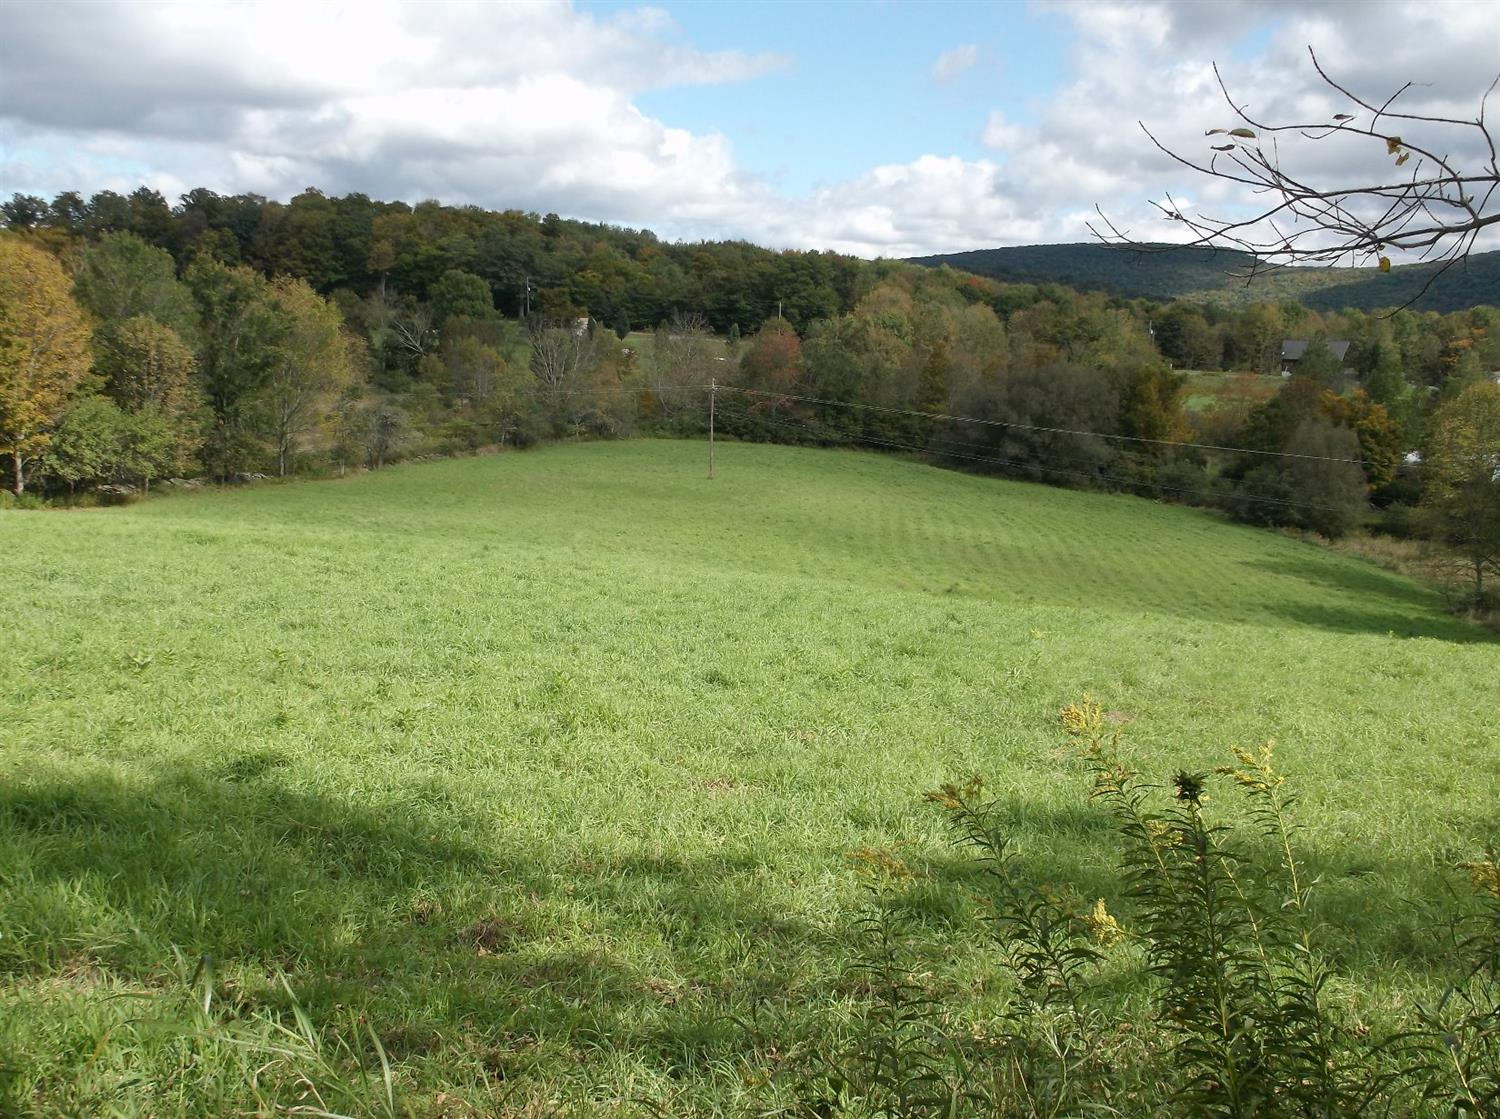 44,900 - 5.61 AcresPeaceful, Open Land and Hardwoods.Nice Location to Build a Home!